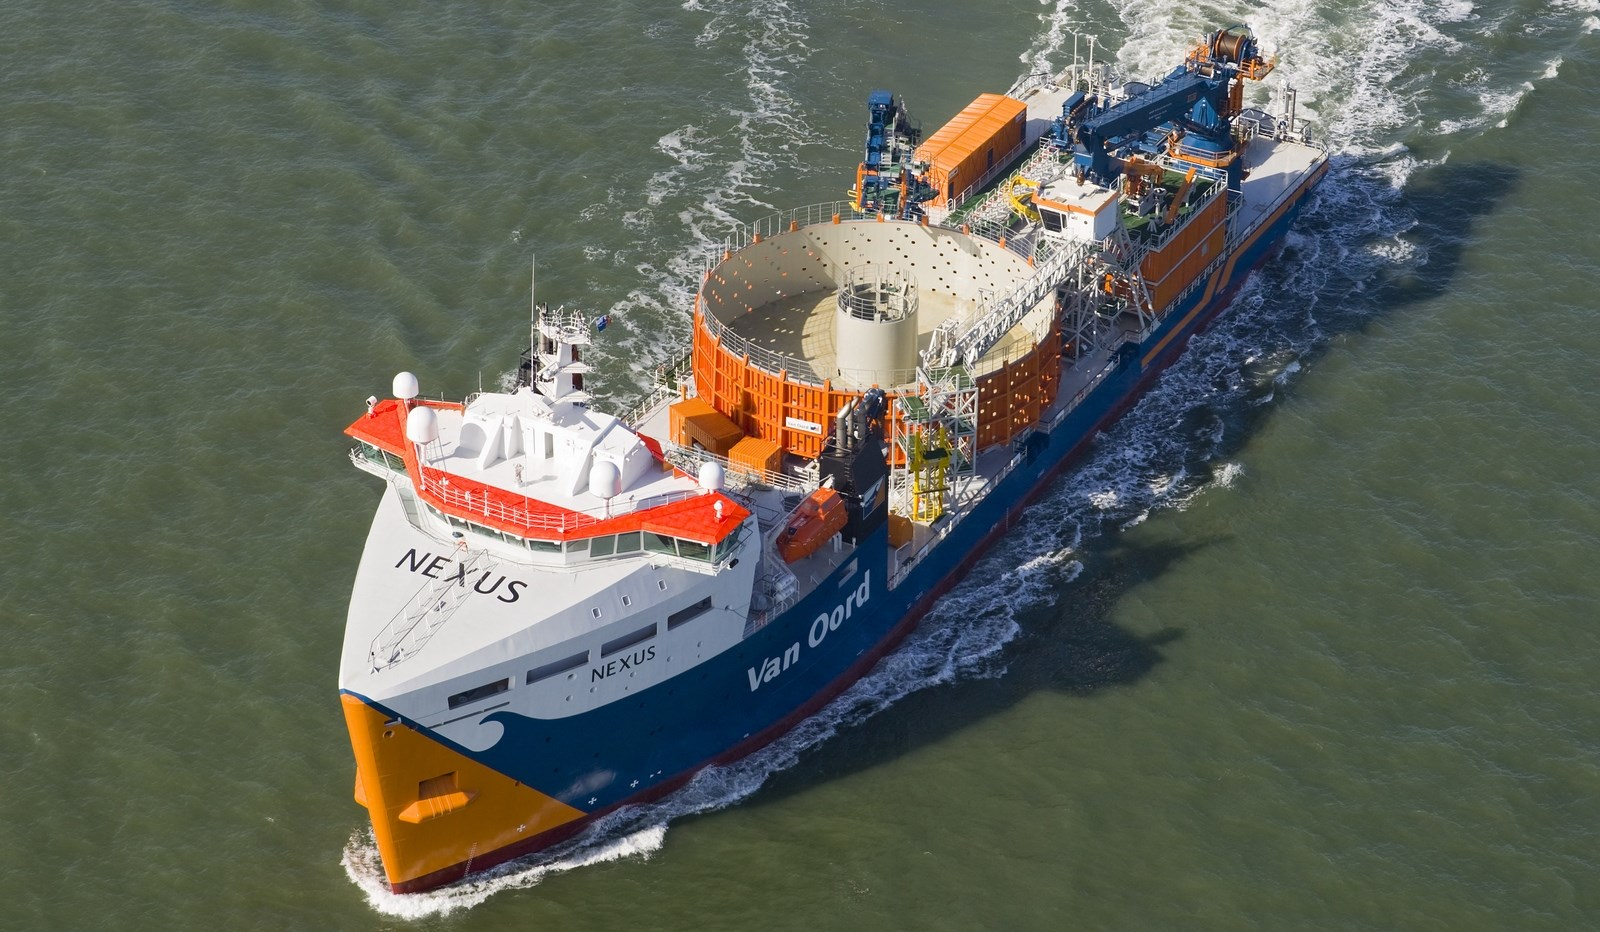 delivery by Damen of an innovative new DOC 8500 cable laying vessel to international offshore contractor